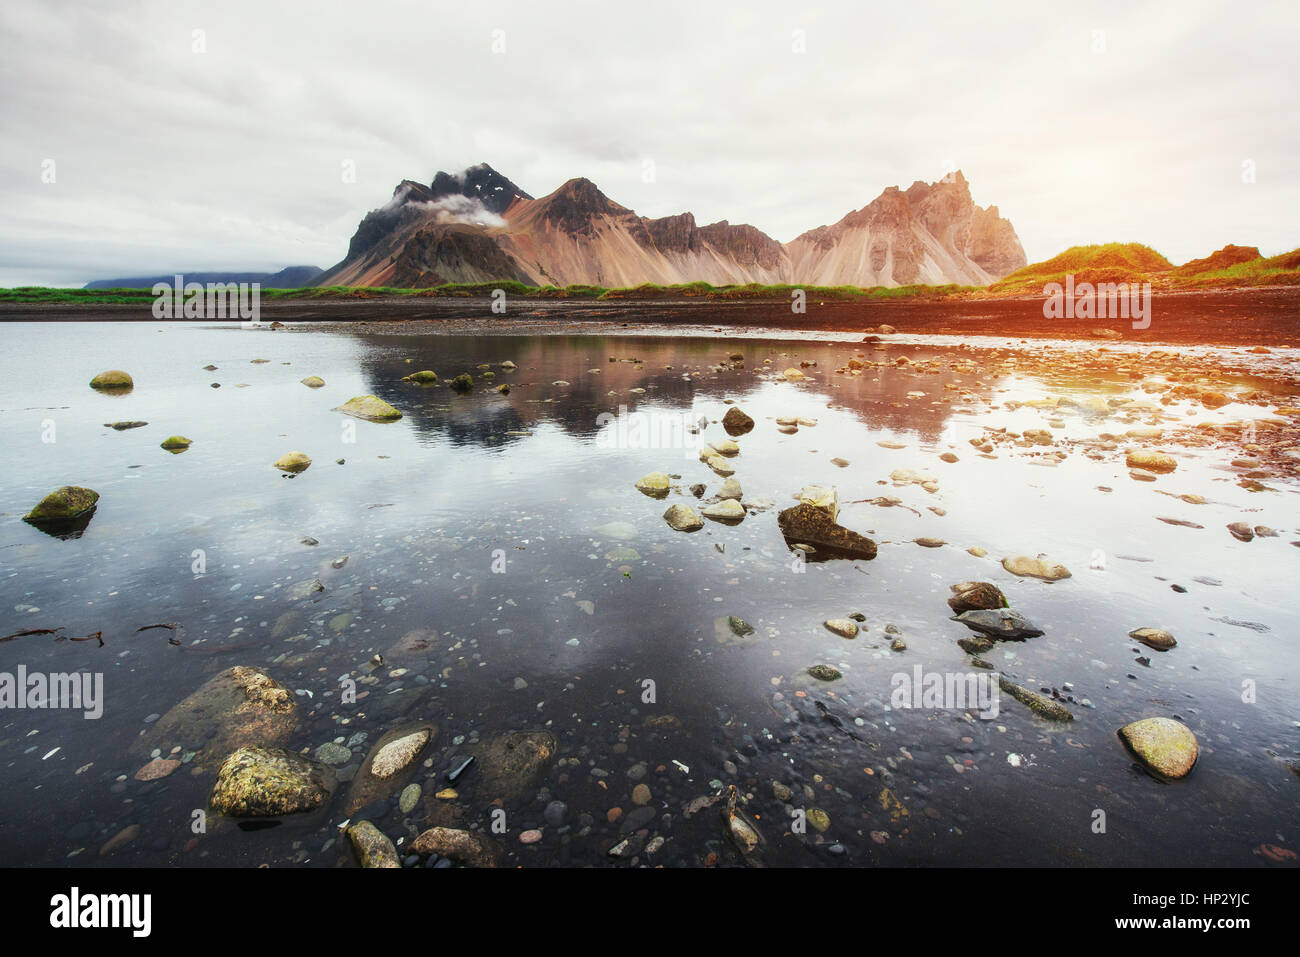 Amazing mountains reflected in the water at sunset. Stoksnes, Ic - Stock Image